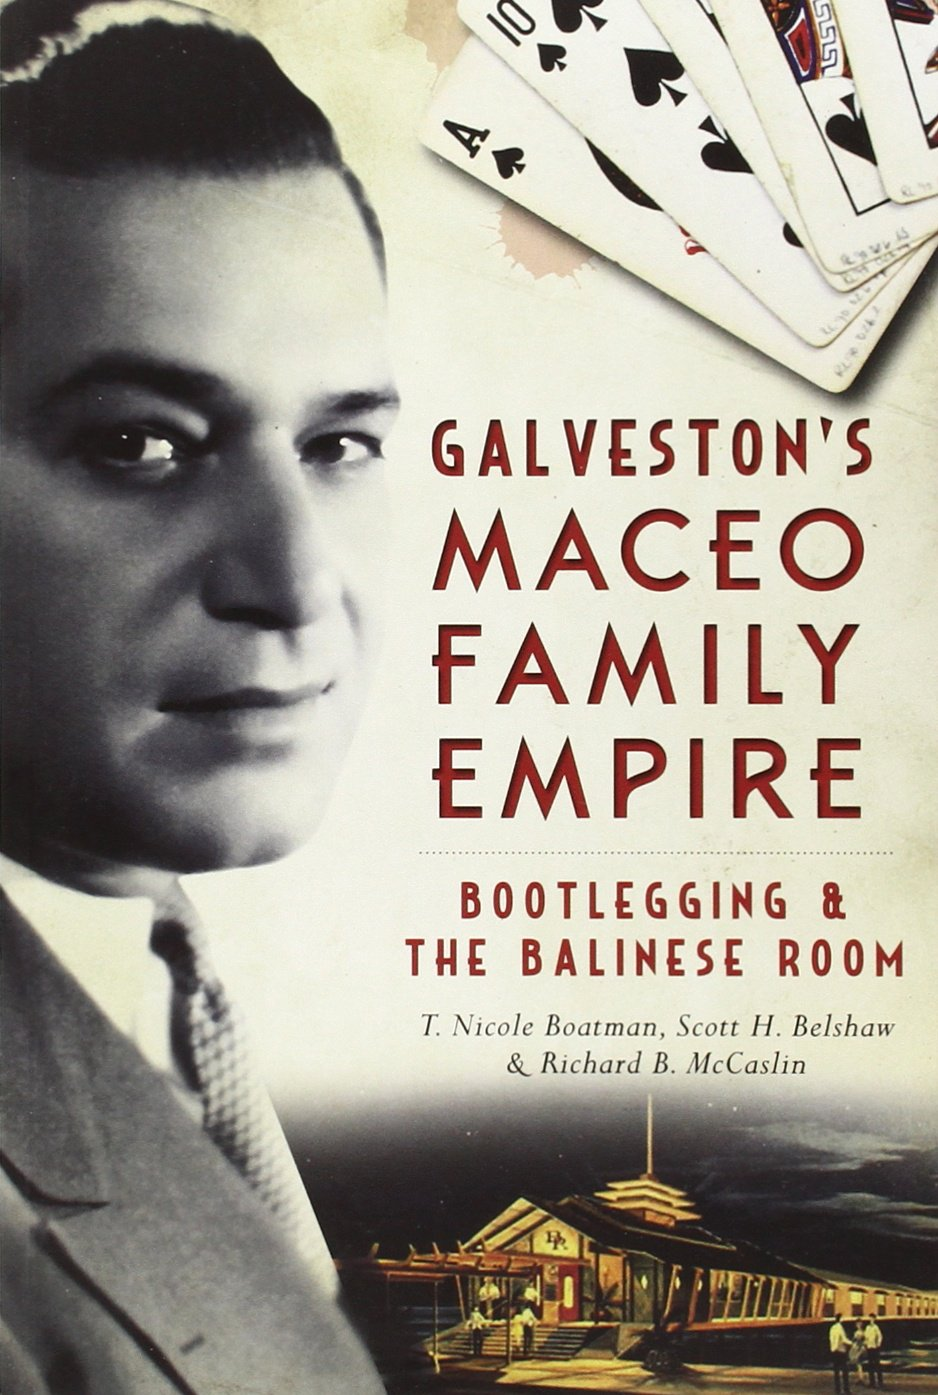 Galvestons Maceo Family Empire Bootlegging product image